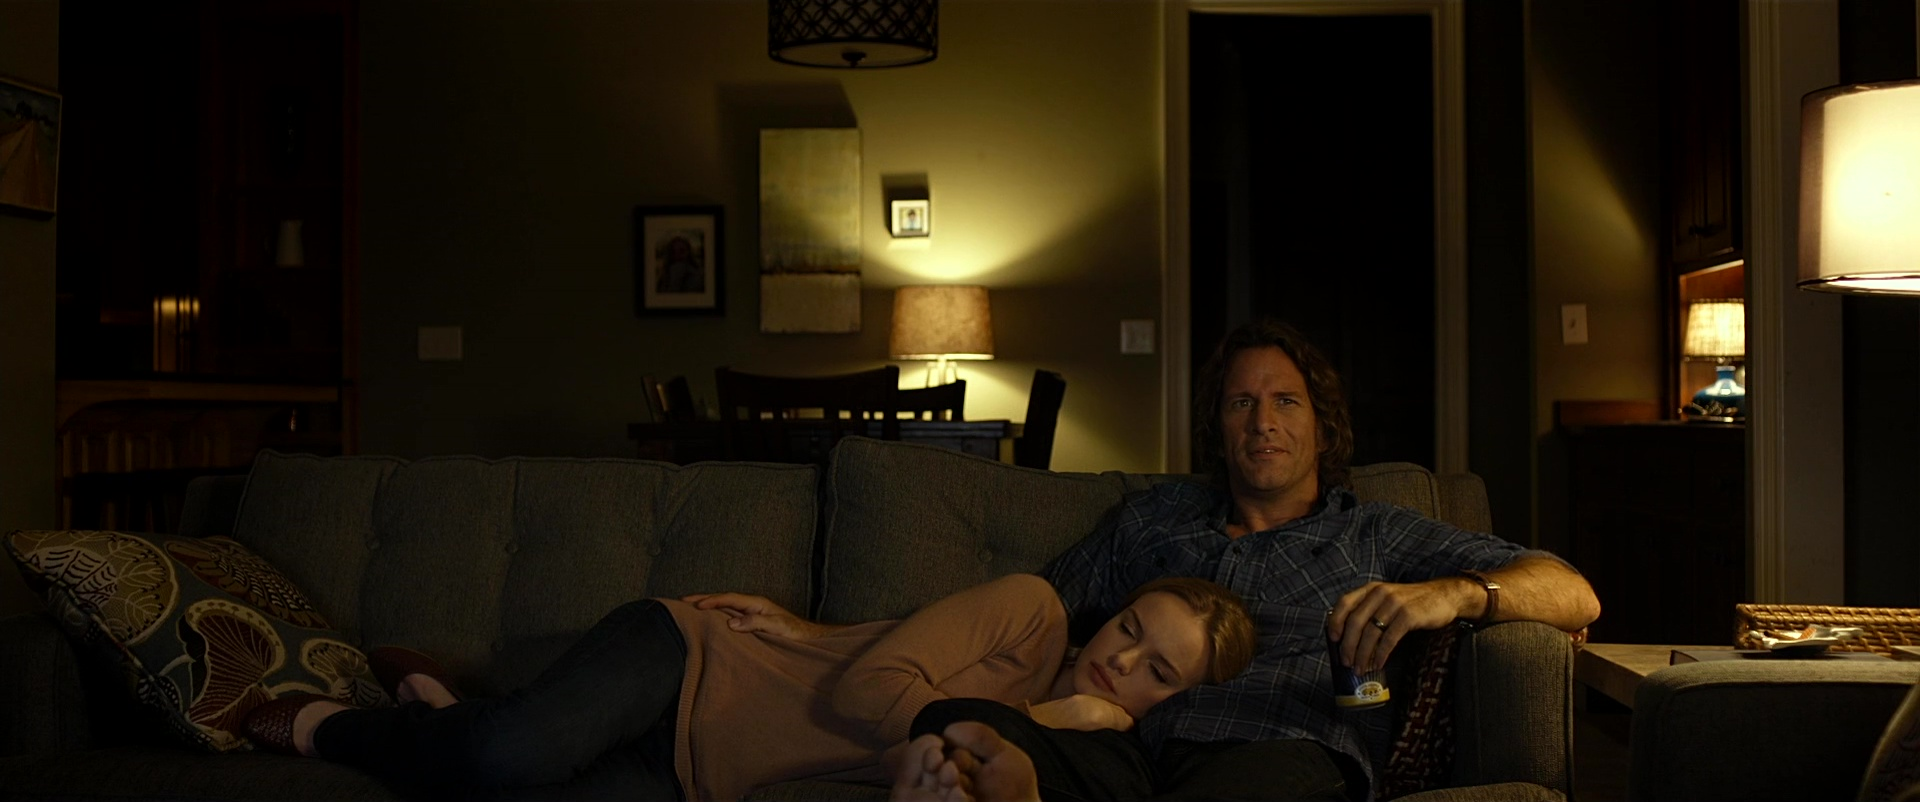 Before I Wake film still 5